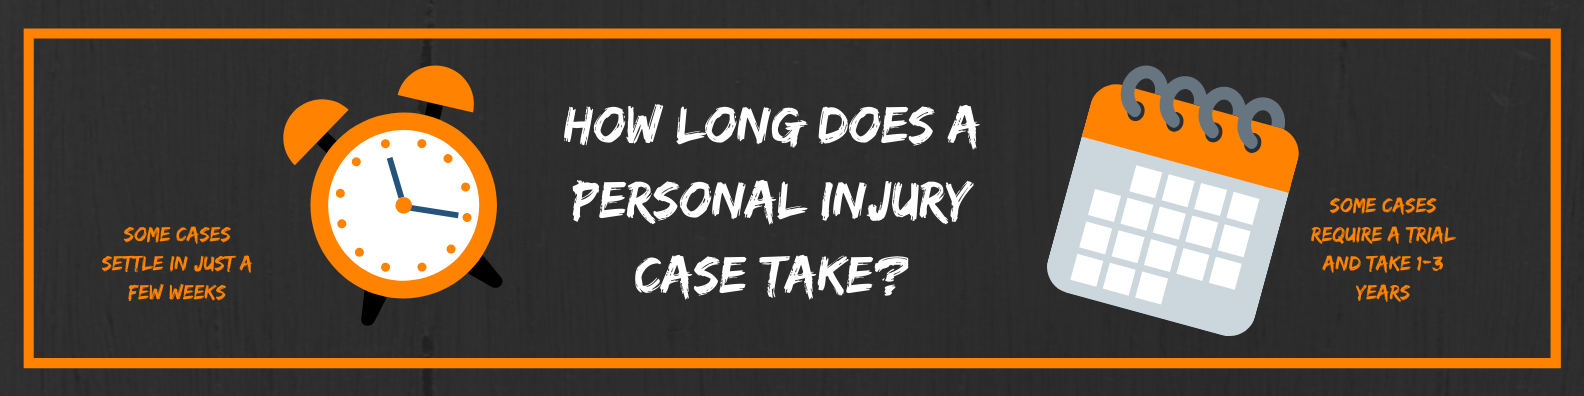 Decorative image about how long it takes to settle a personal injury case